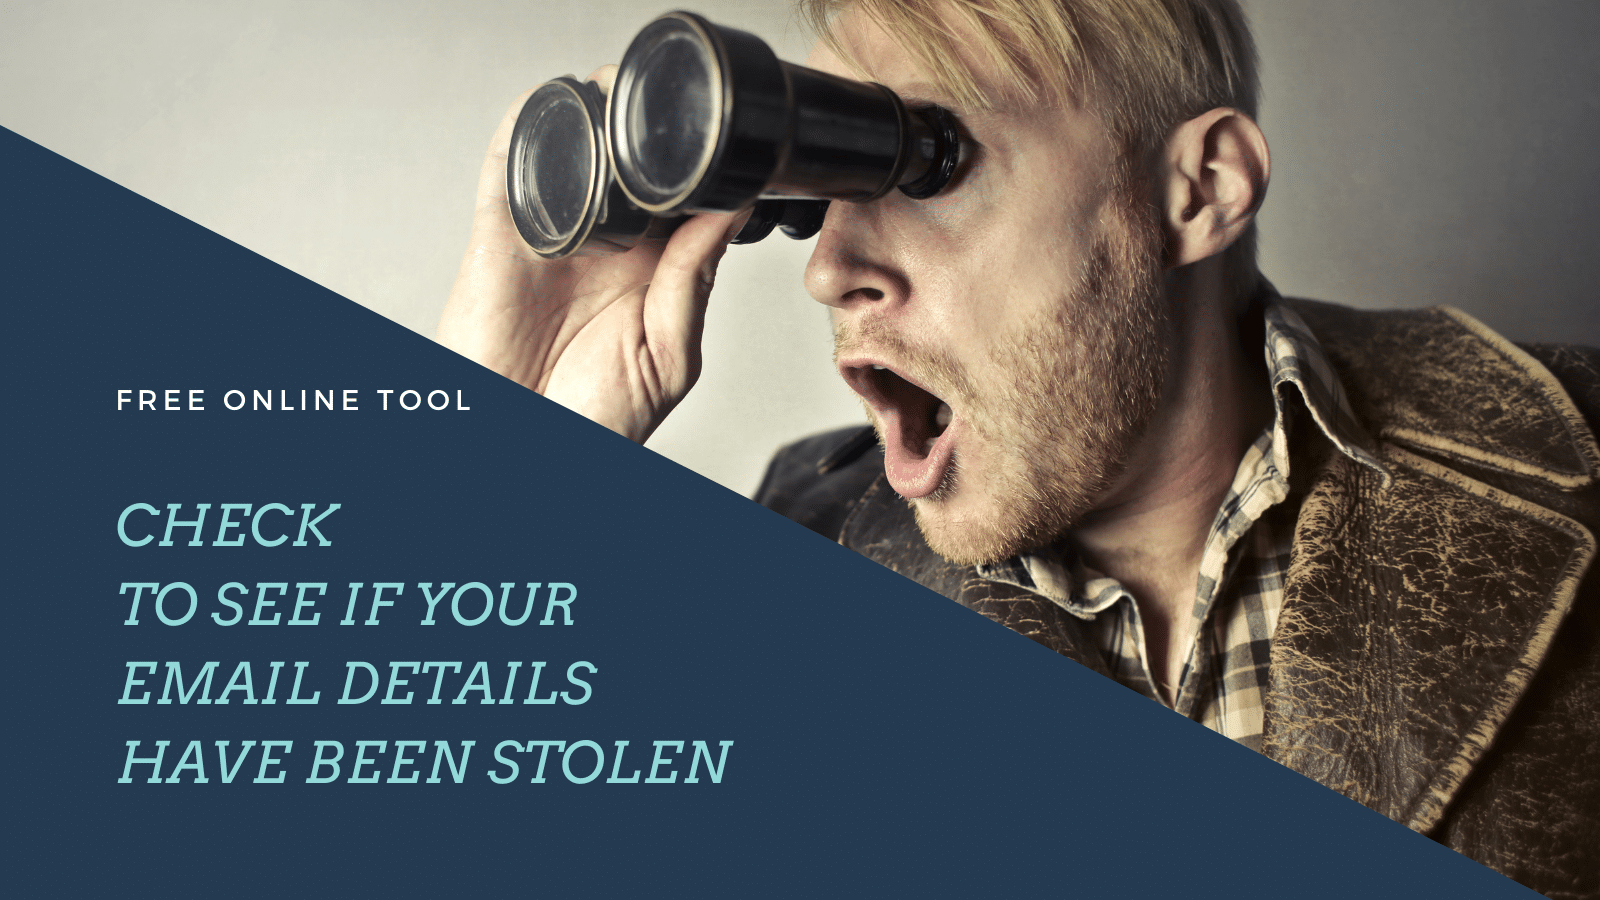 Free tool – Check to see if your email account has been stolen